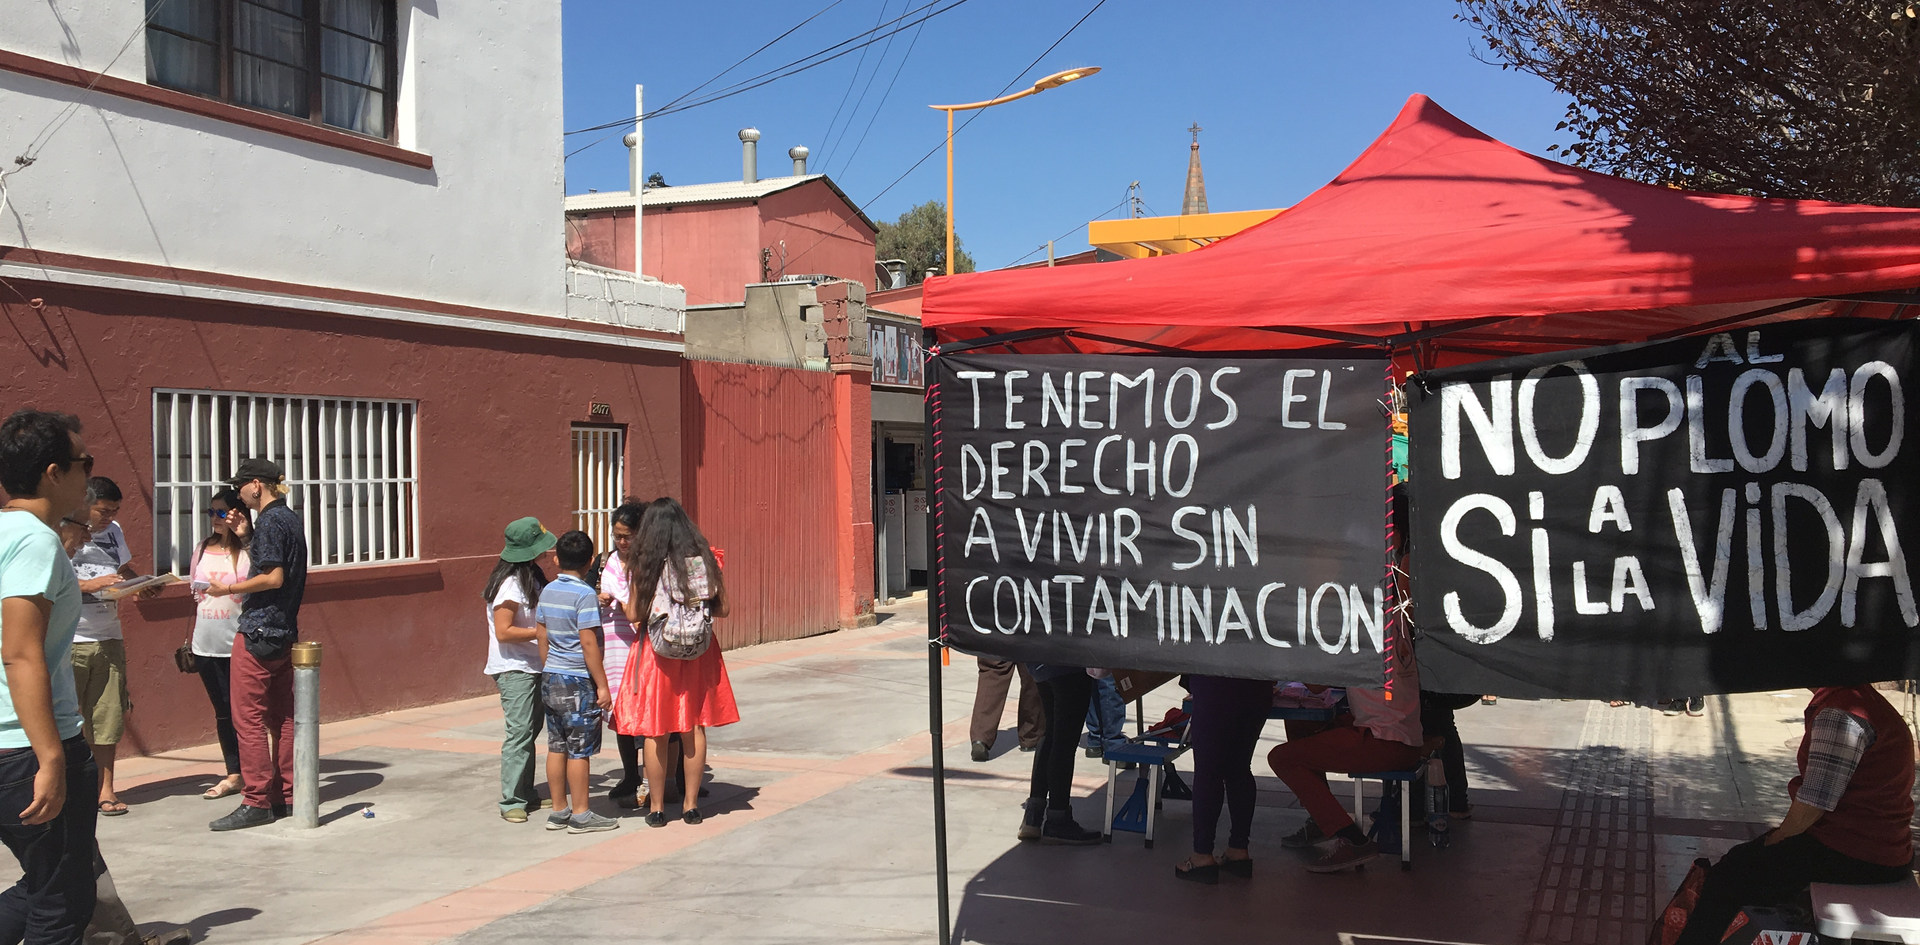 Right to live without pollution in Calama, Chile